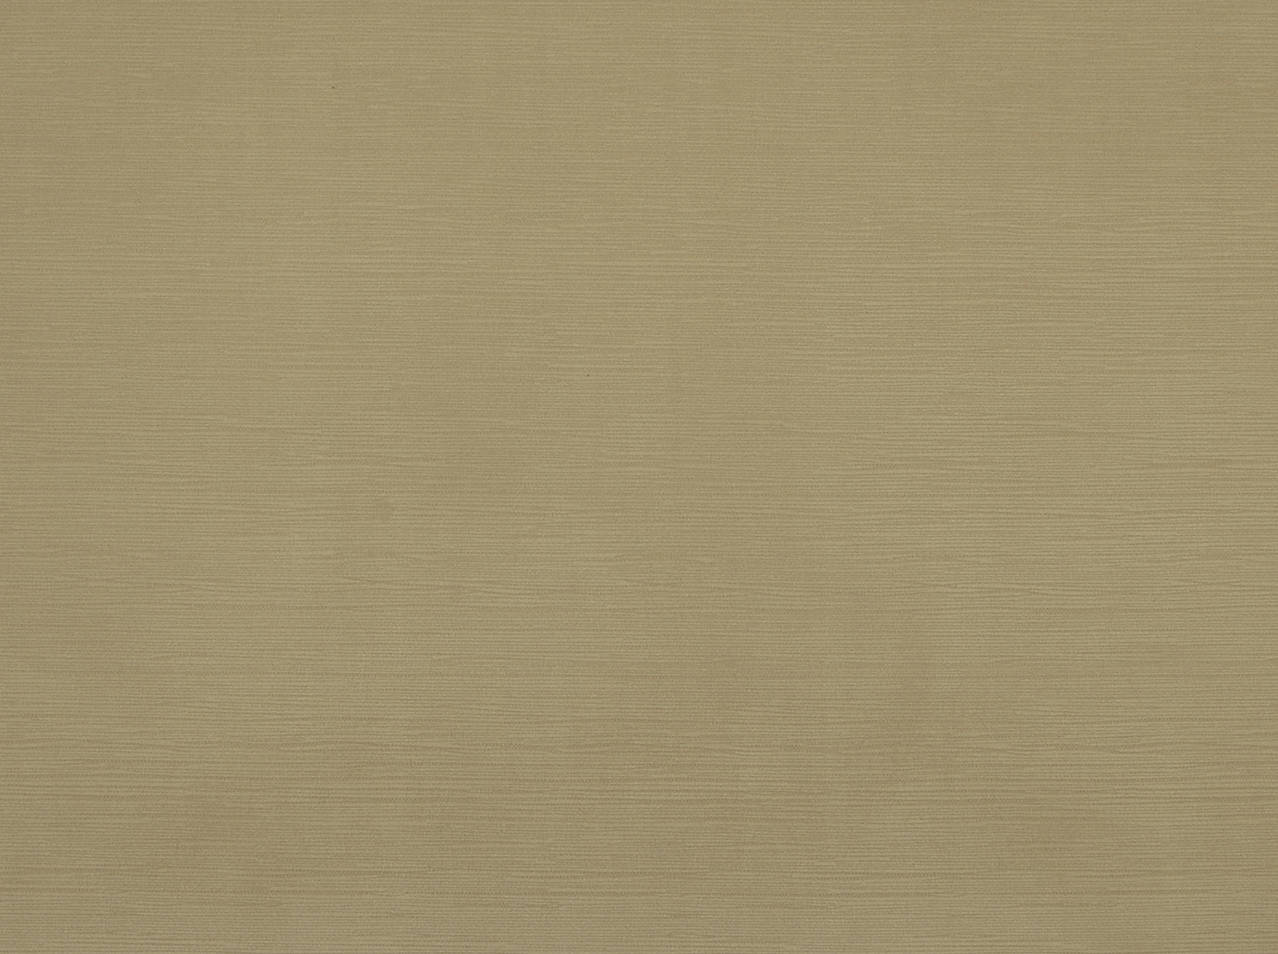 Covington Solids%20and%20Textures Hawthorne